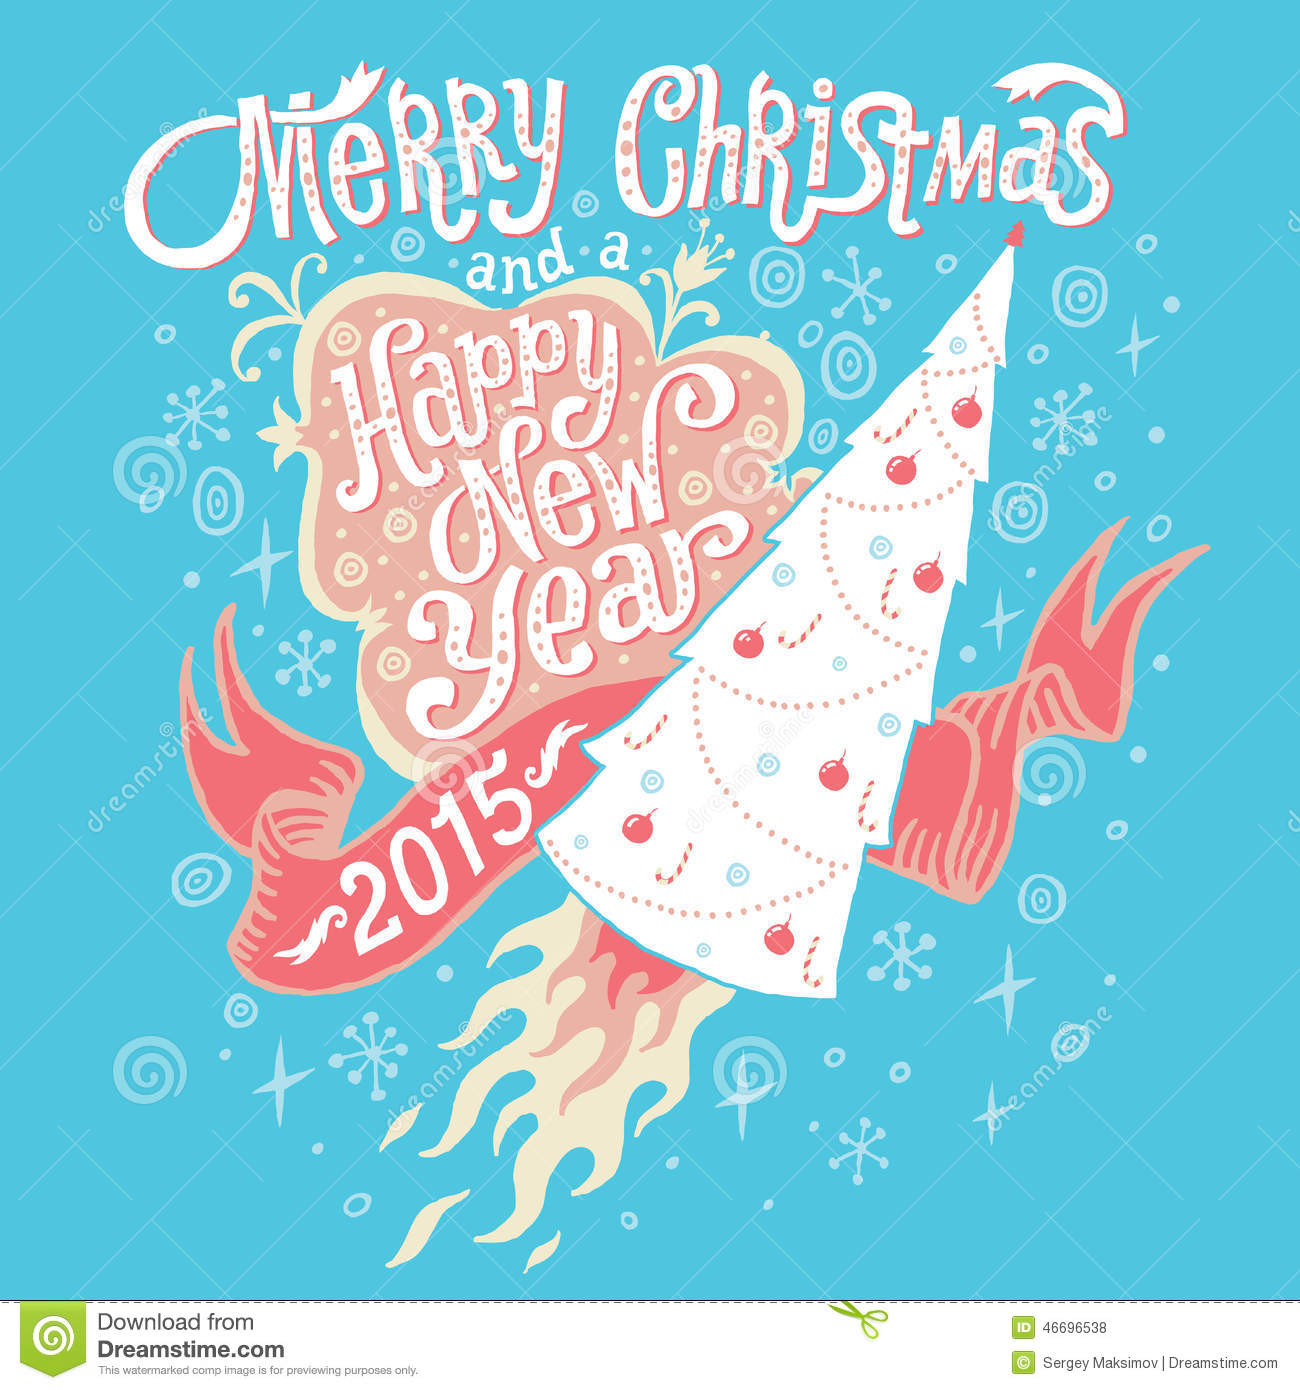 Merry Christmas And Happy New Year 2015 Greeting Card With Hand